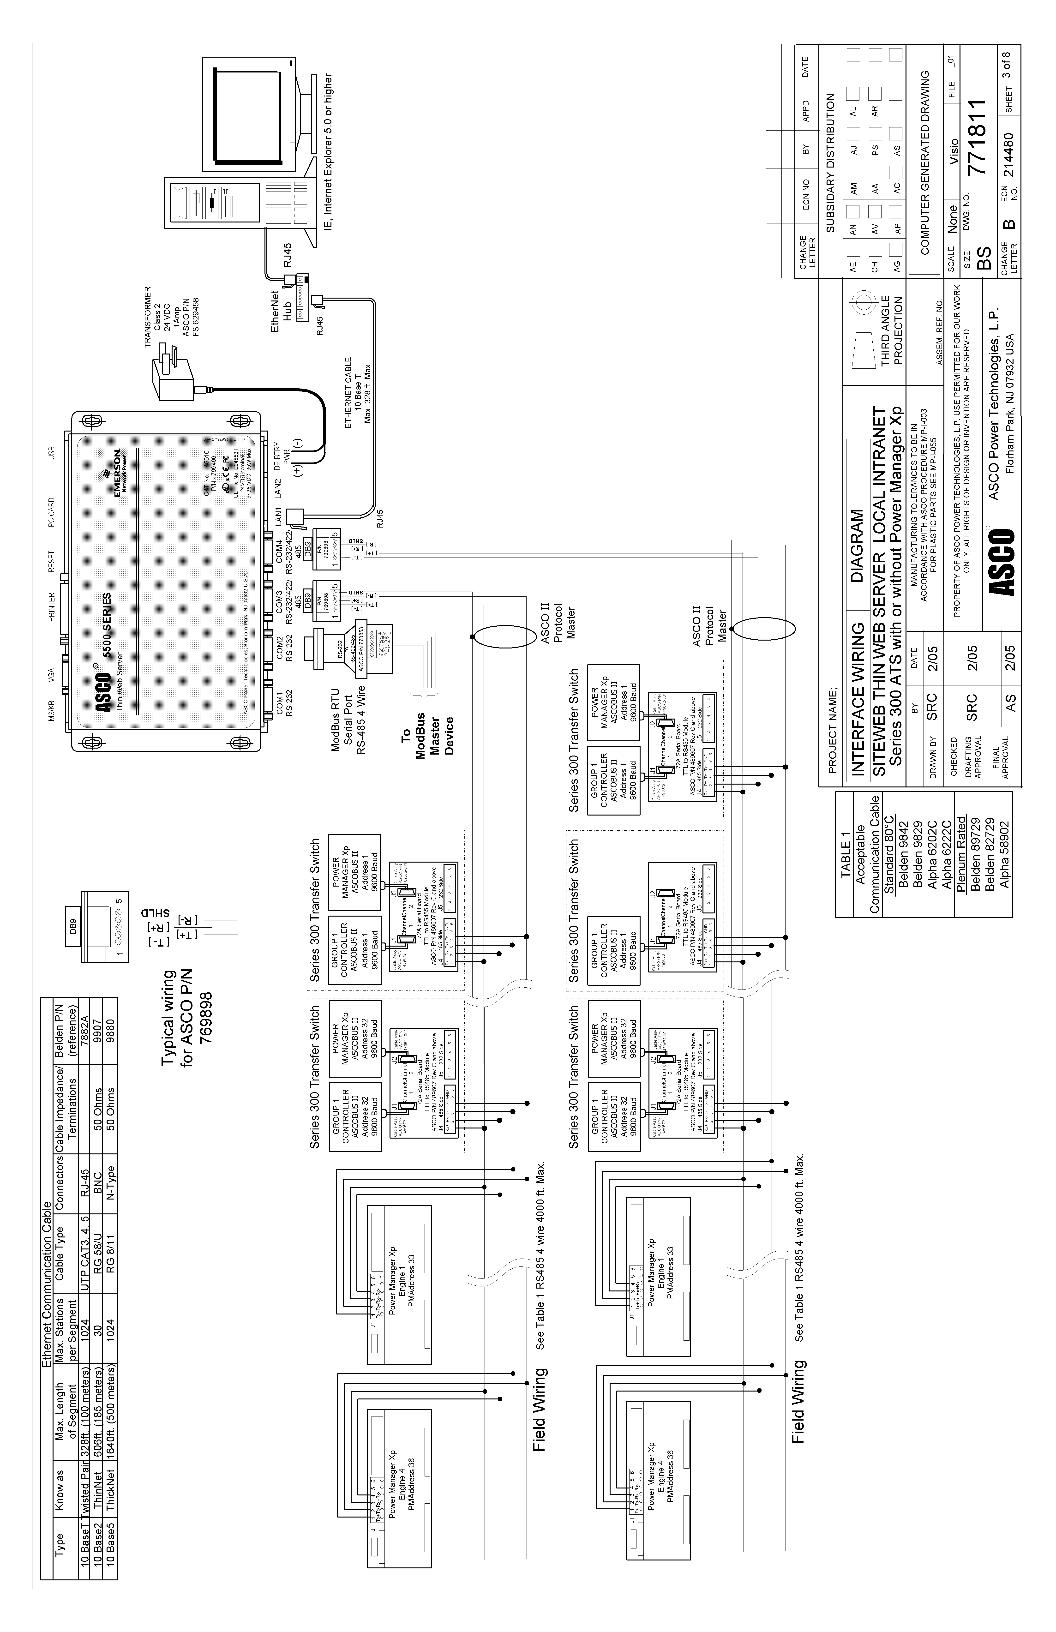 Wiring Diagram Panel Ats Amf